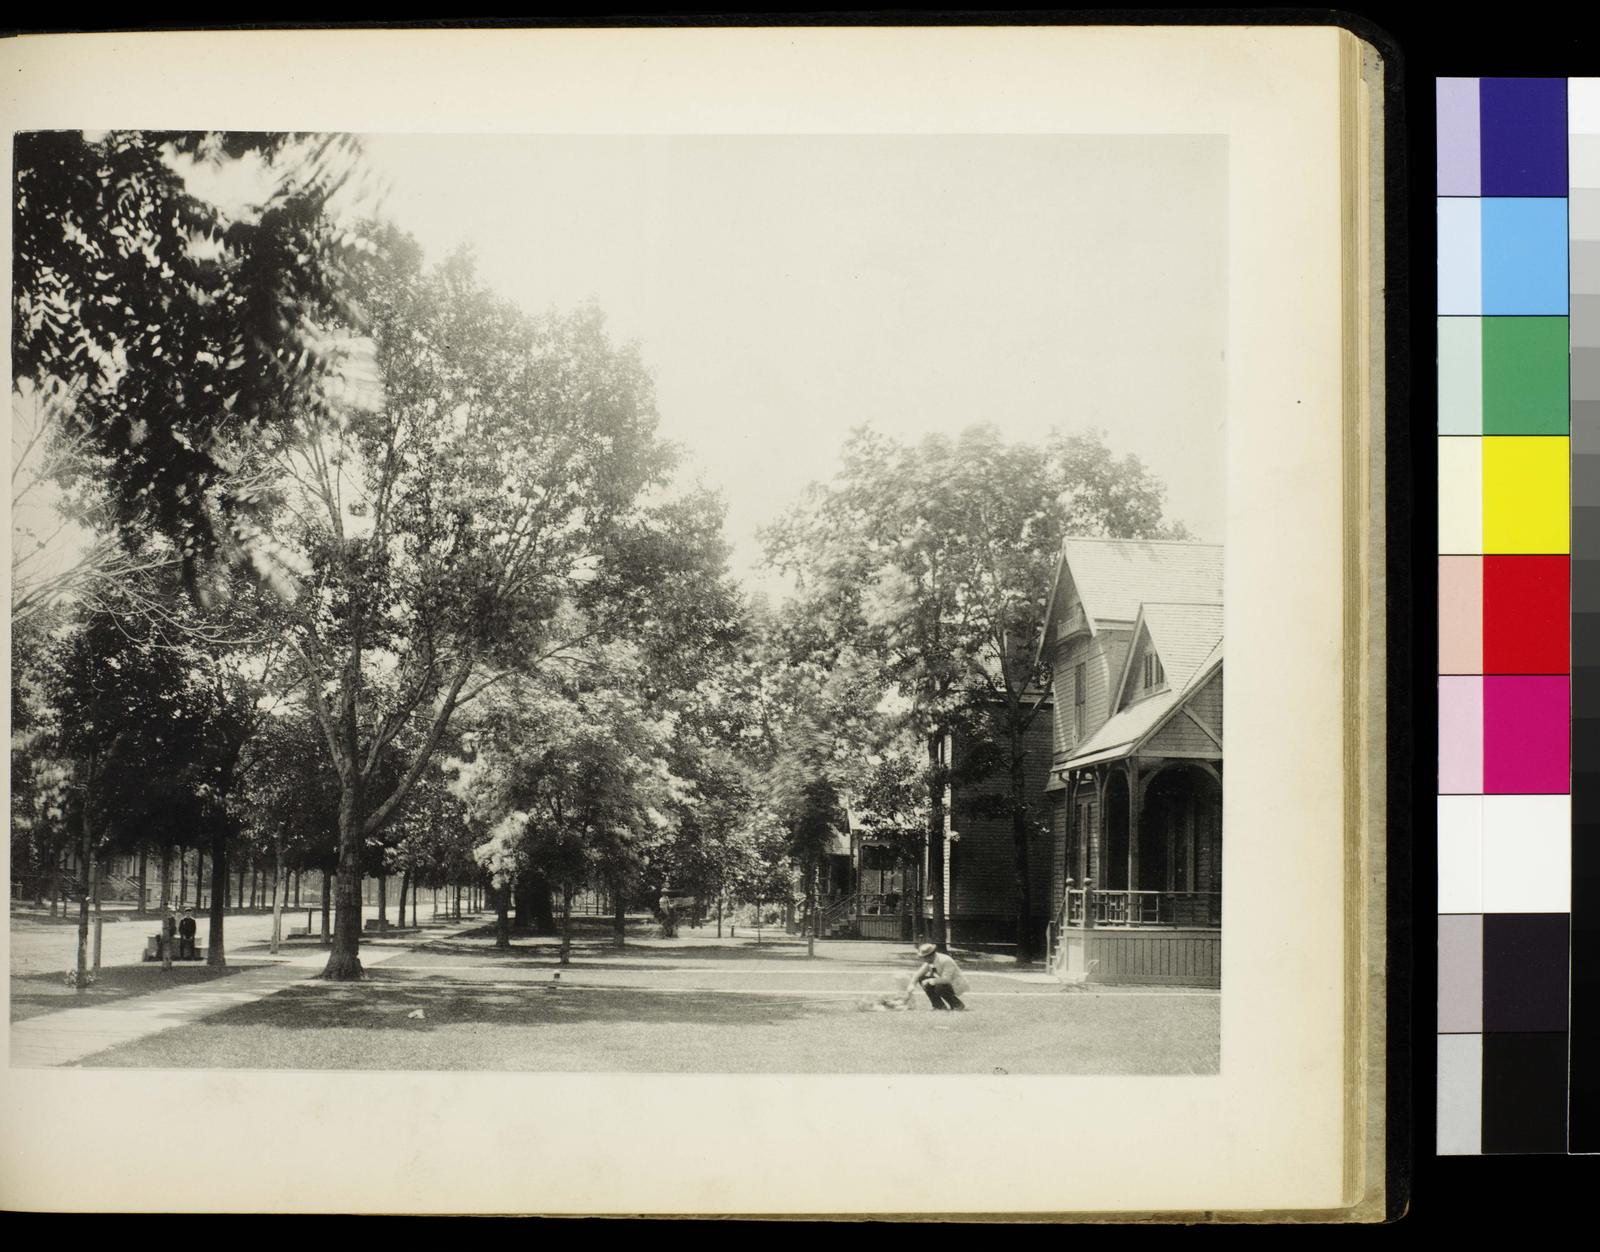 Photographic views of picturesque Evanston, state of Illinois. Cor. Maple Avenue and Grove Street. Versos